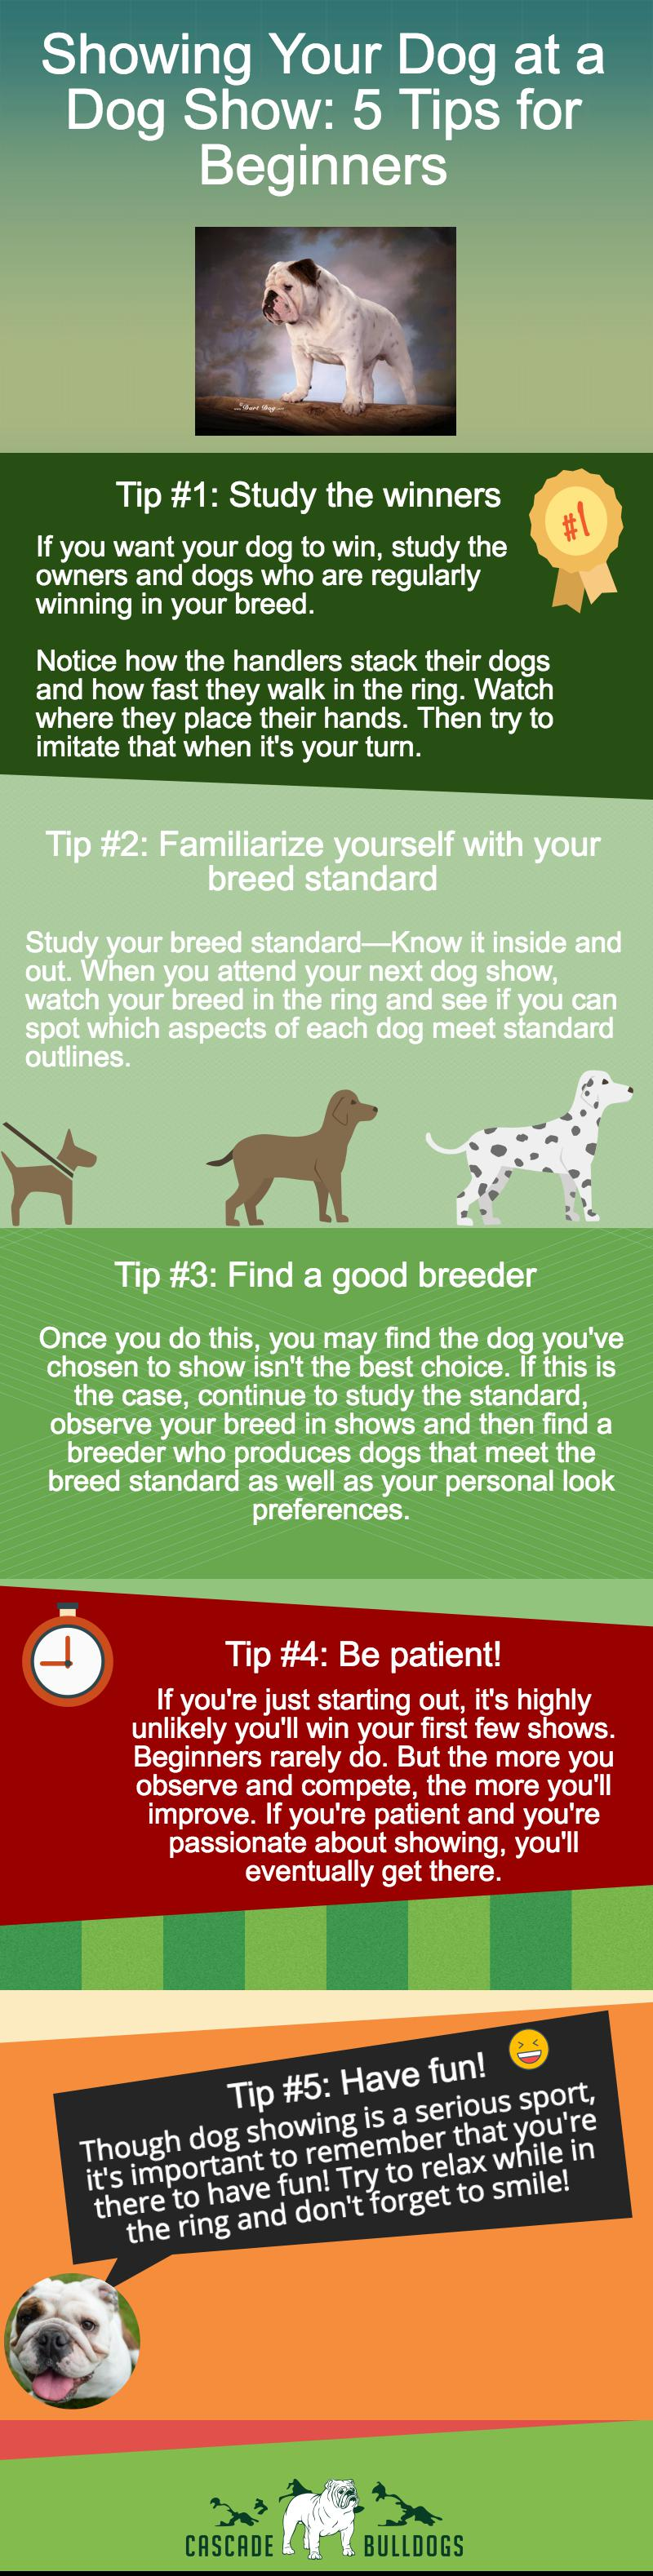 5 Dog Show Tips for Beginners